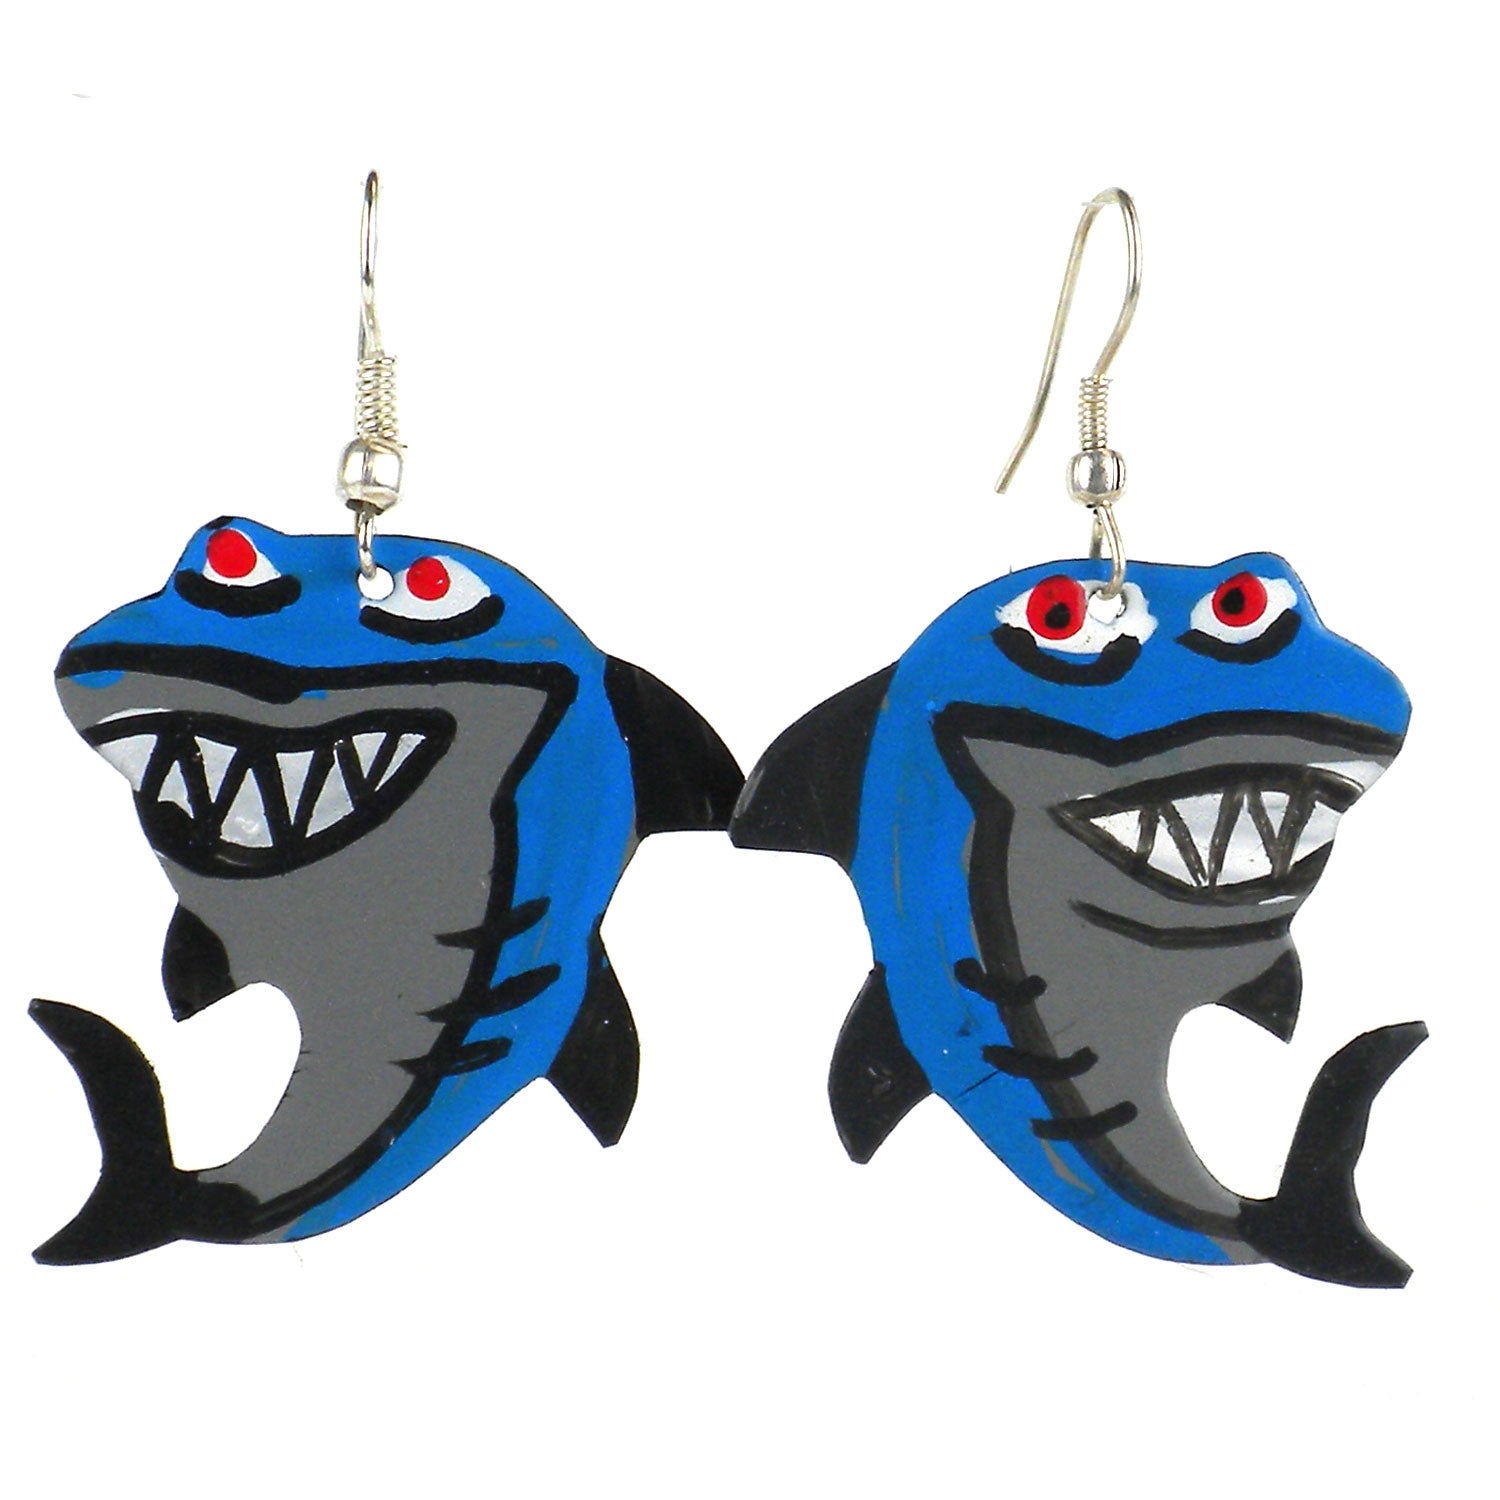 Painted Shark Earrings